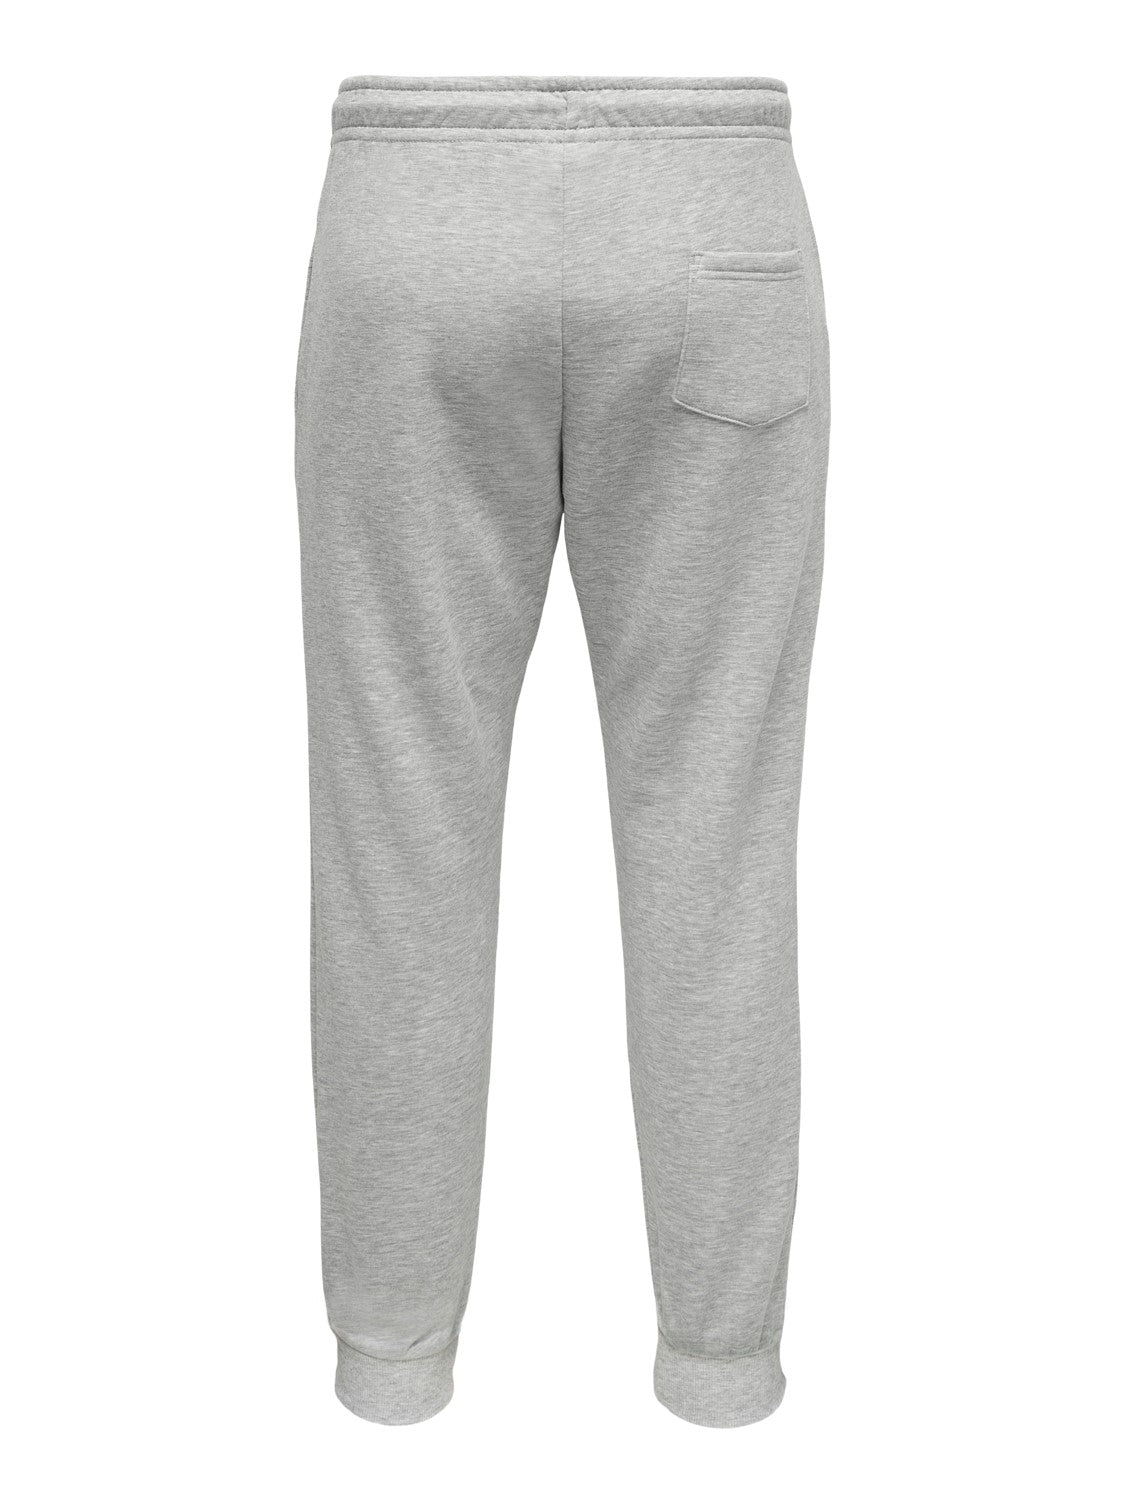 CERES LIFE SWEAT PANTS NOOS - Grå - Only & Sons